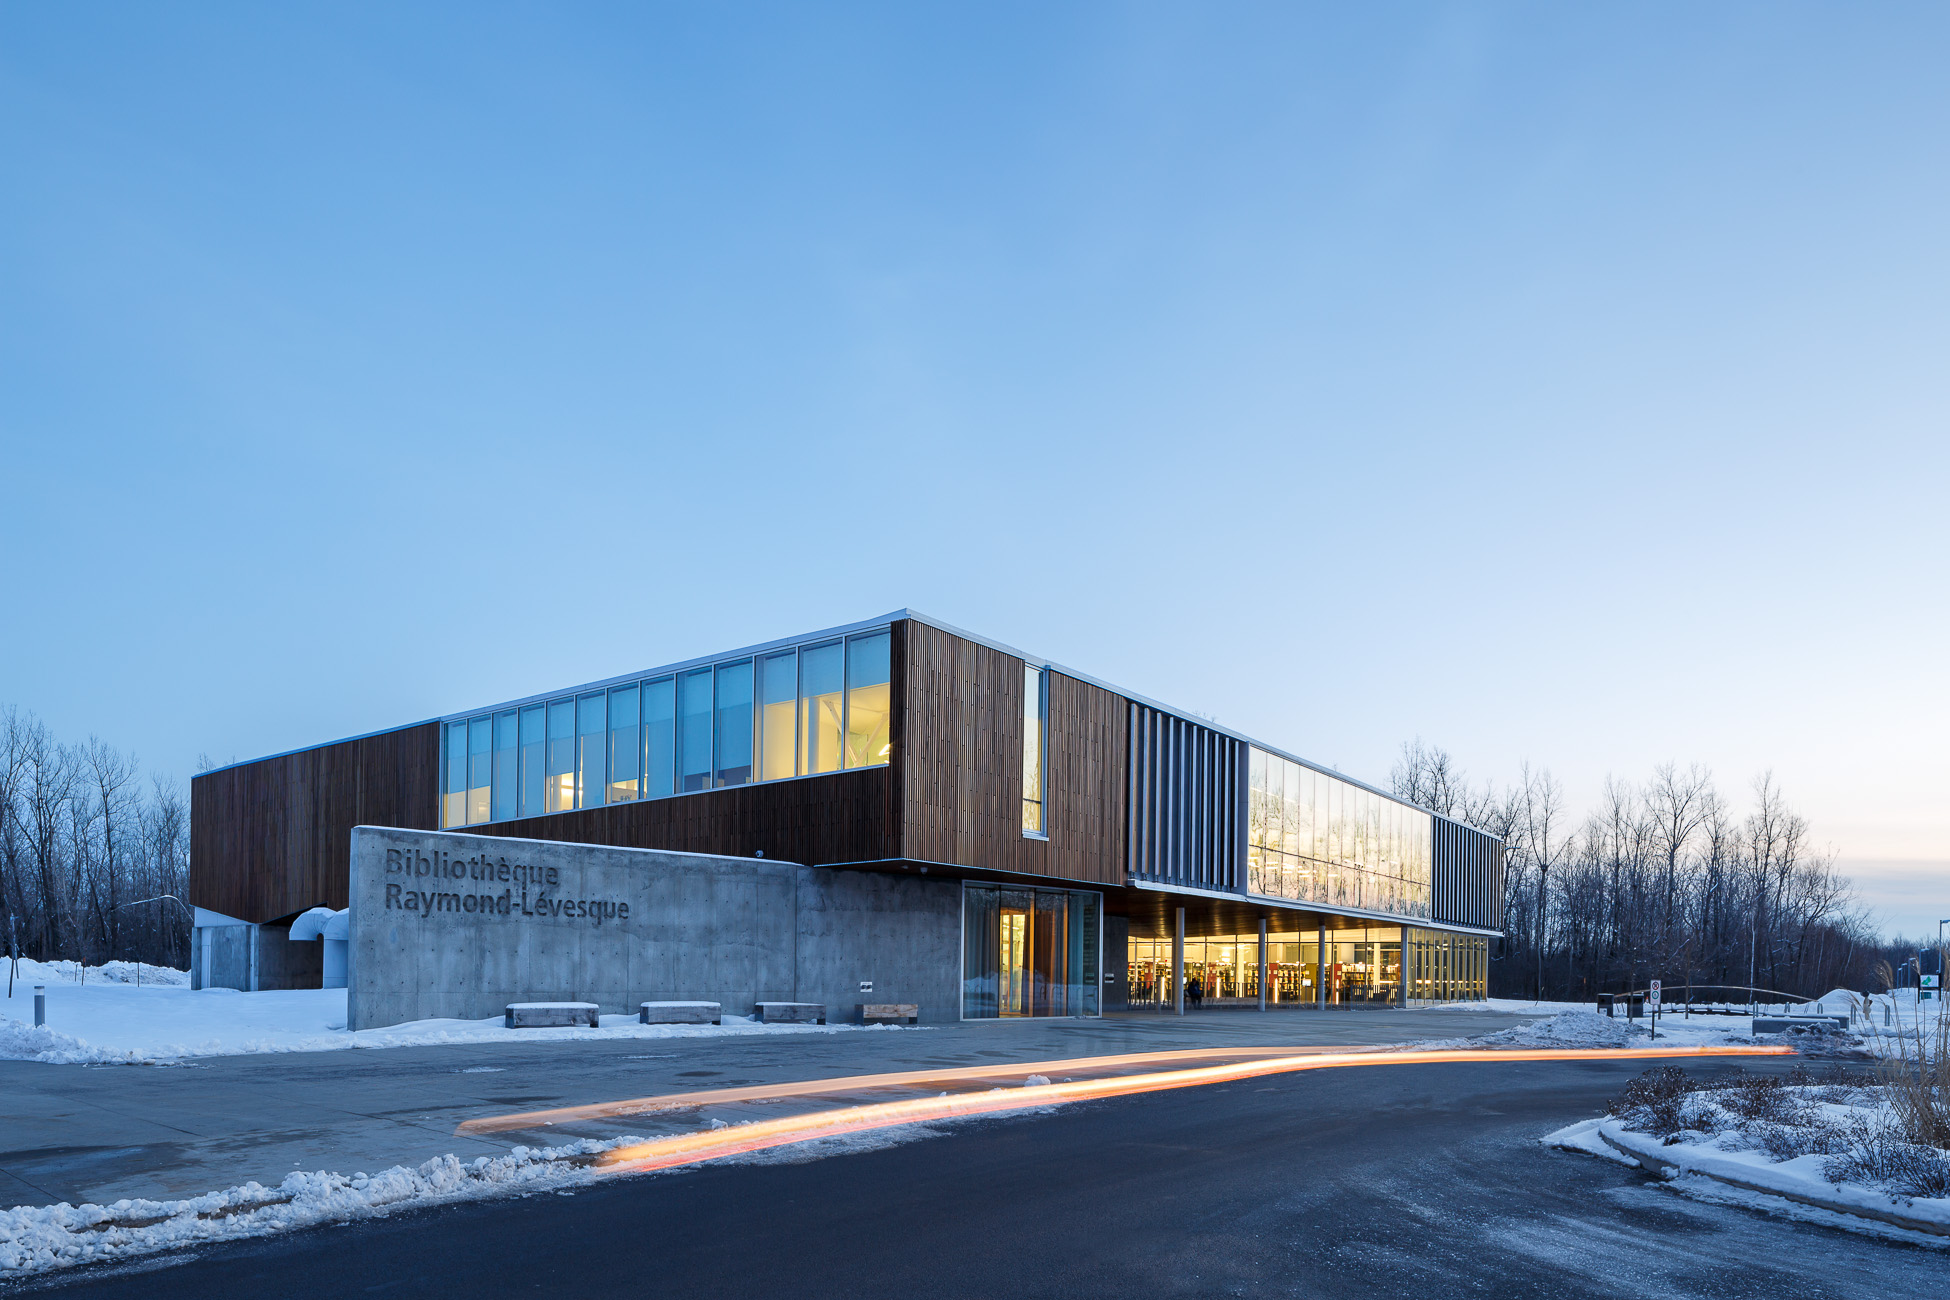 doublespace_architecture_photograph_montreal_library_bibliotheque_raymond_levesque -11.jpg